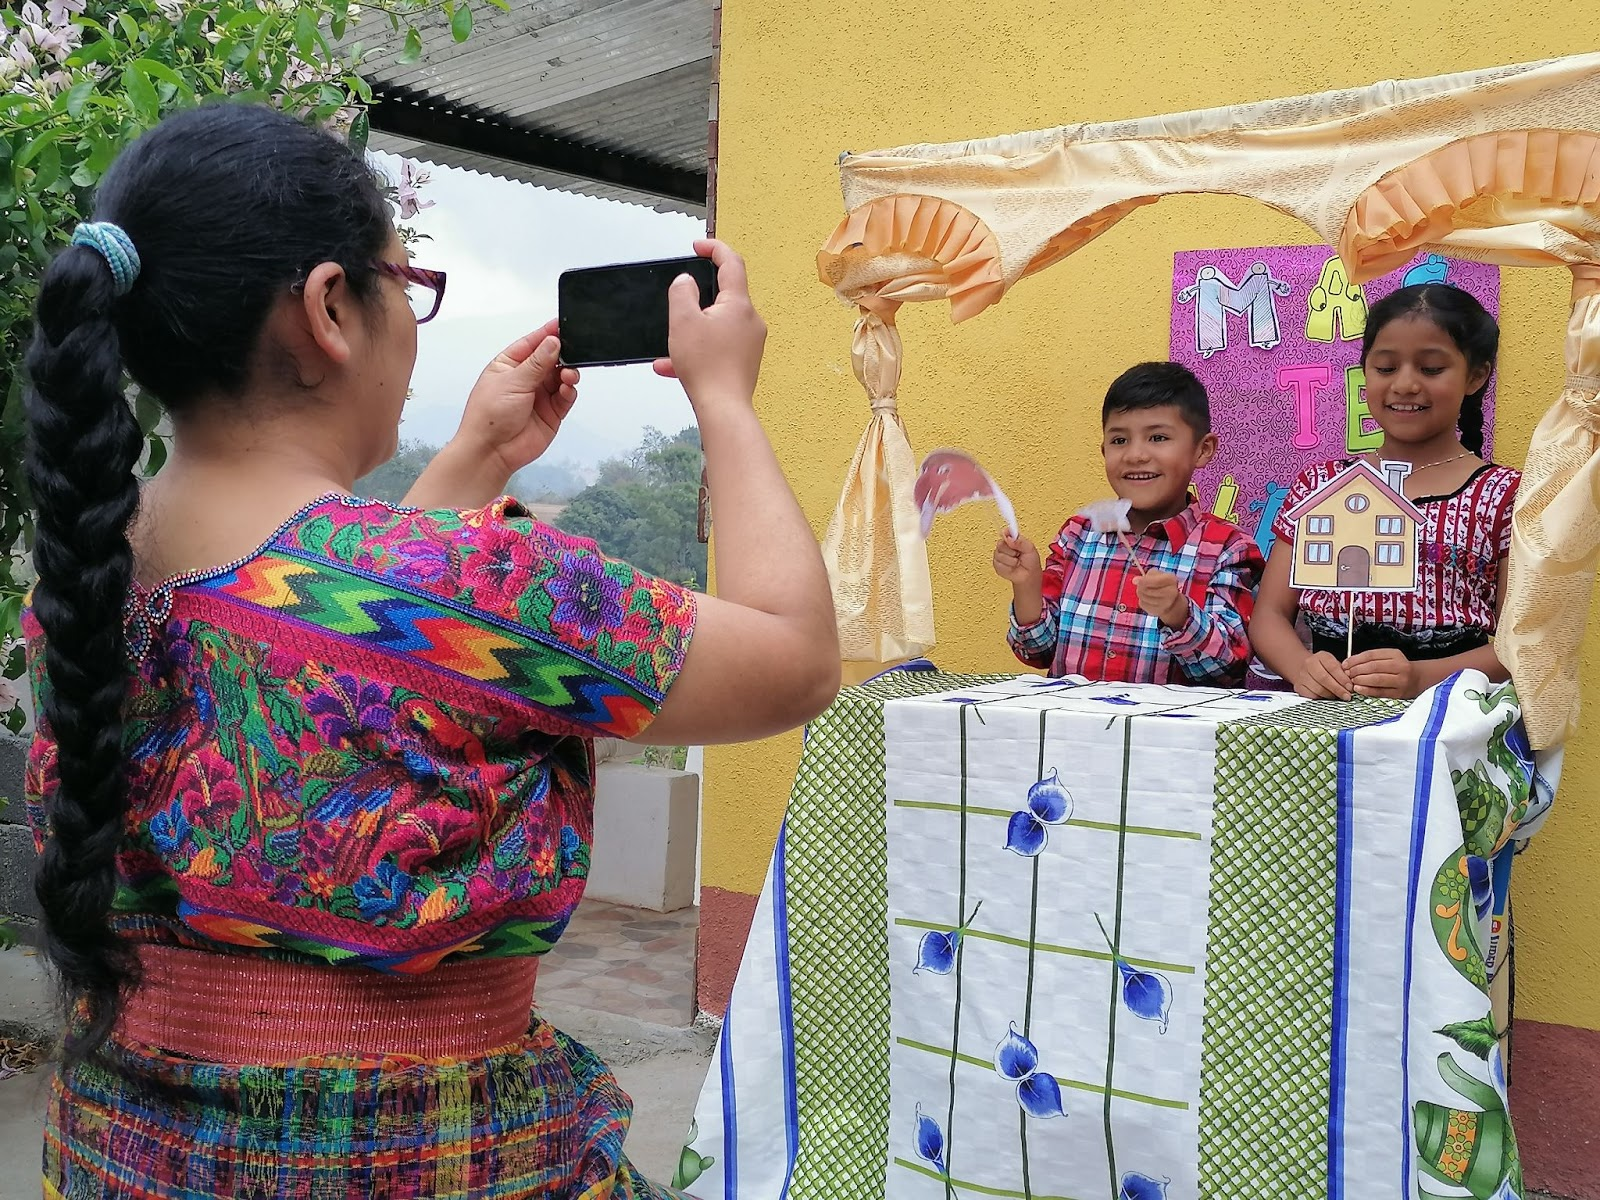 Children performing puppet show while mother films